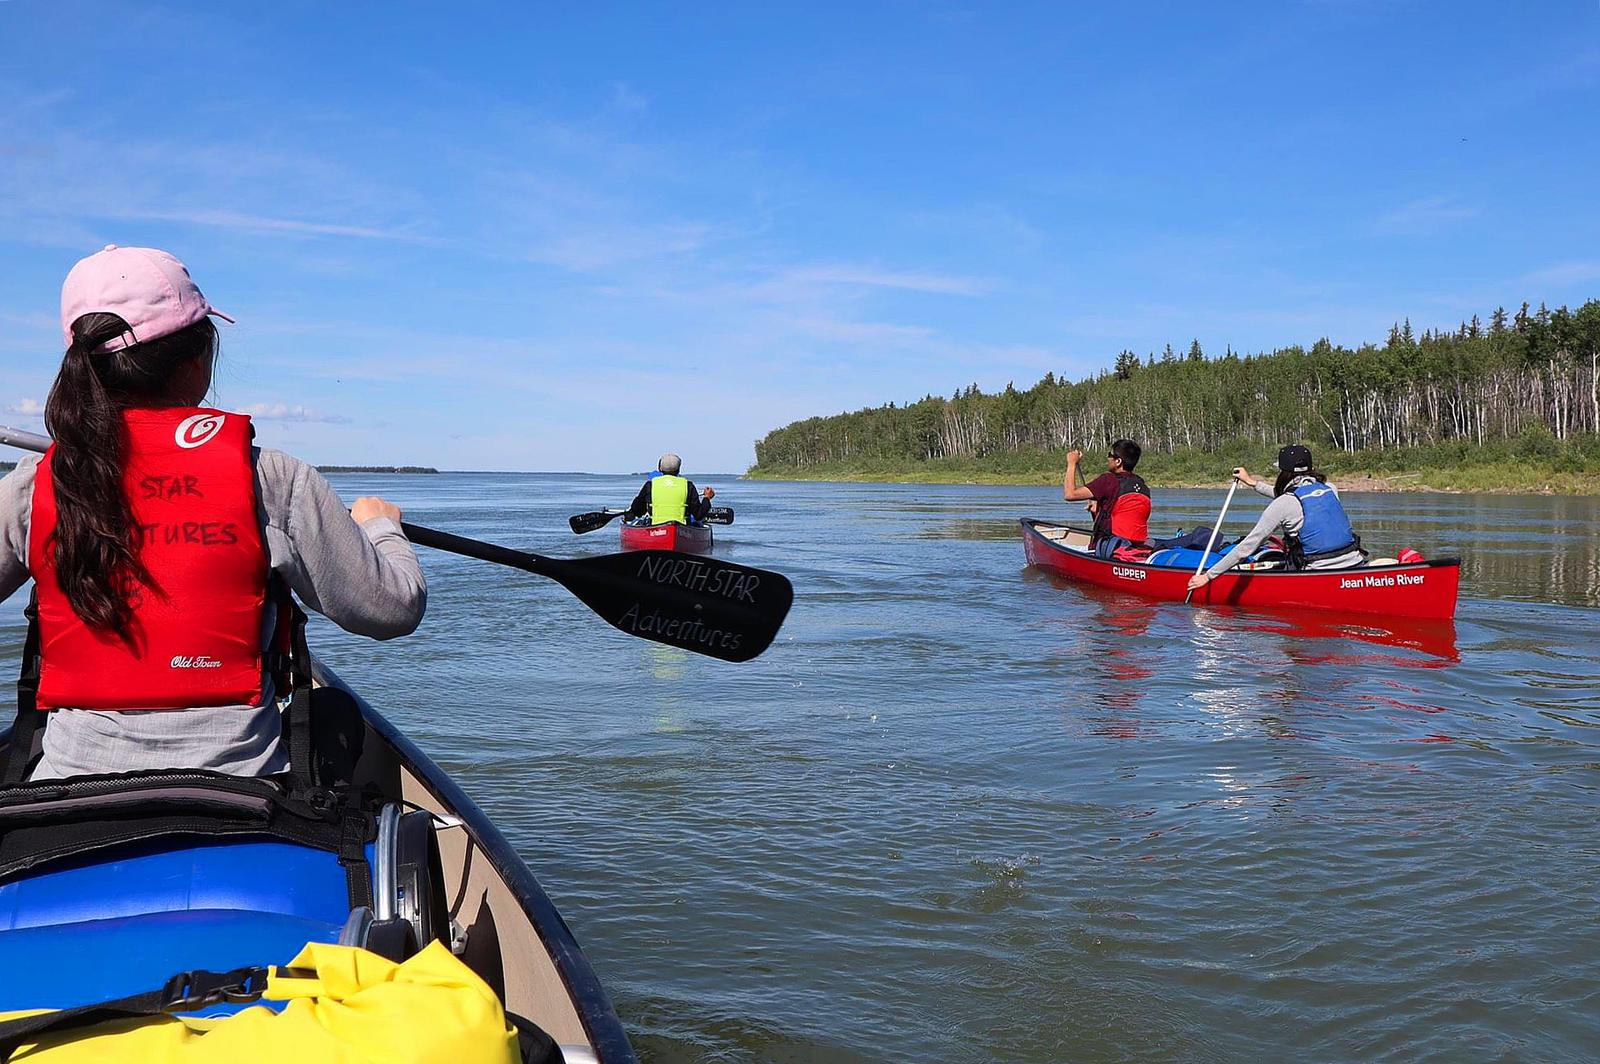 mackenzie river canoe tours, genuine indigenous culture